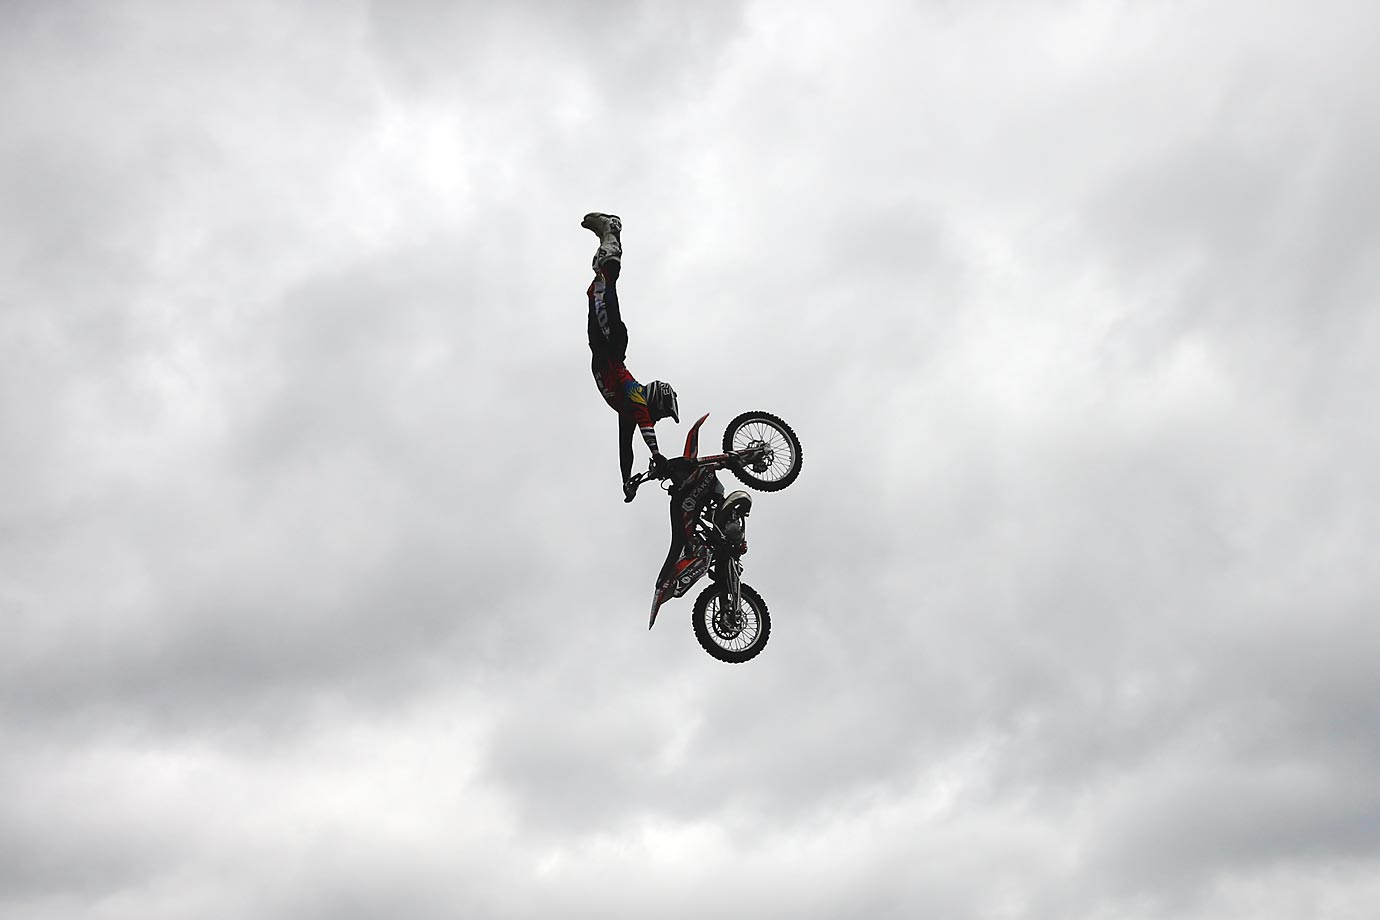 Motorcross rider Steve Sommerfeld executes a jump at the Night of the Jumps Freestyle MX World Championship event in London, England on June 2.